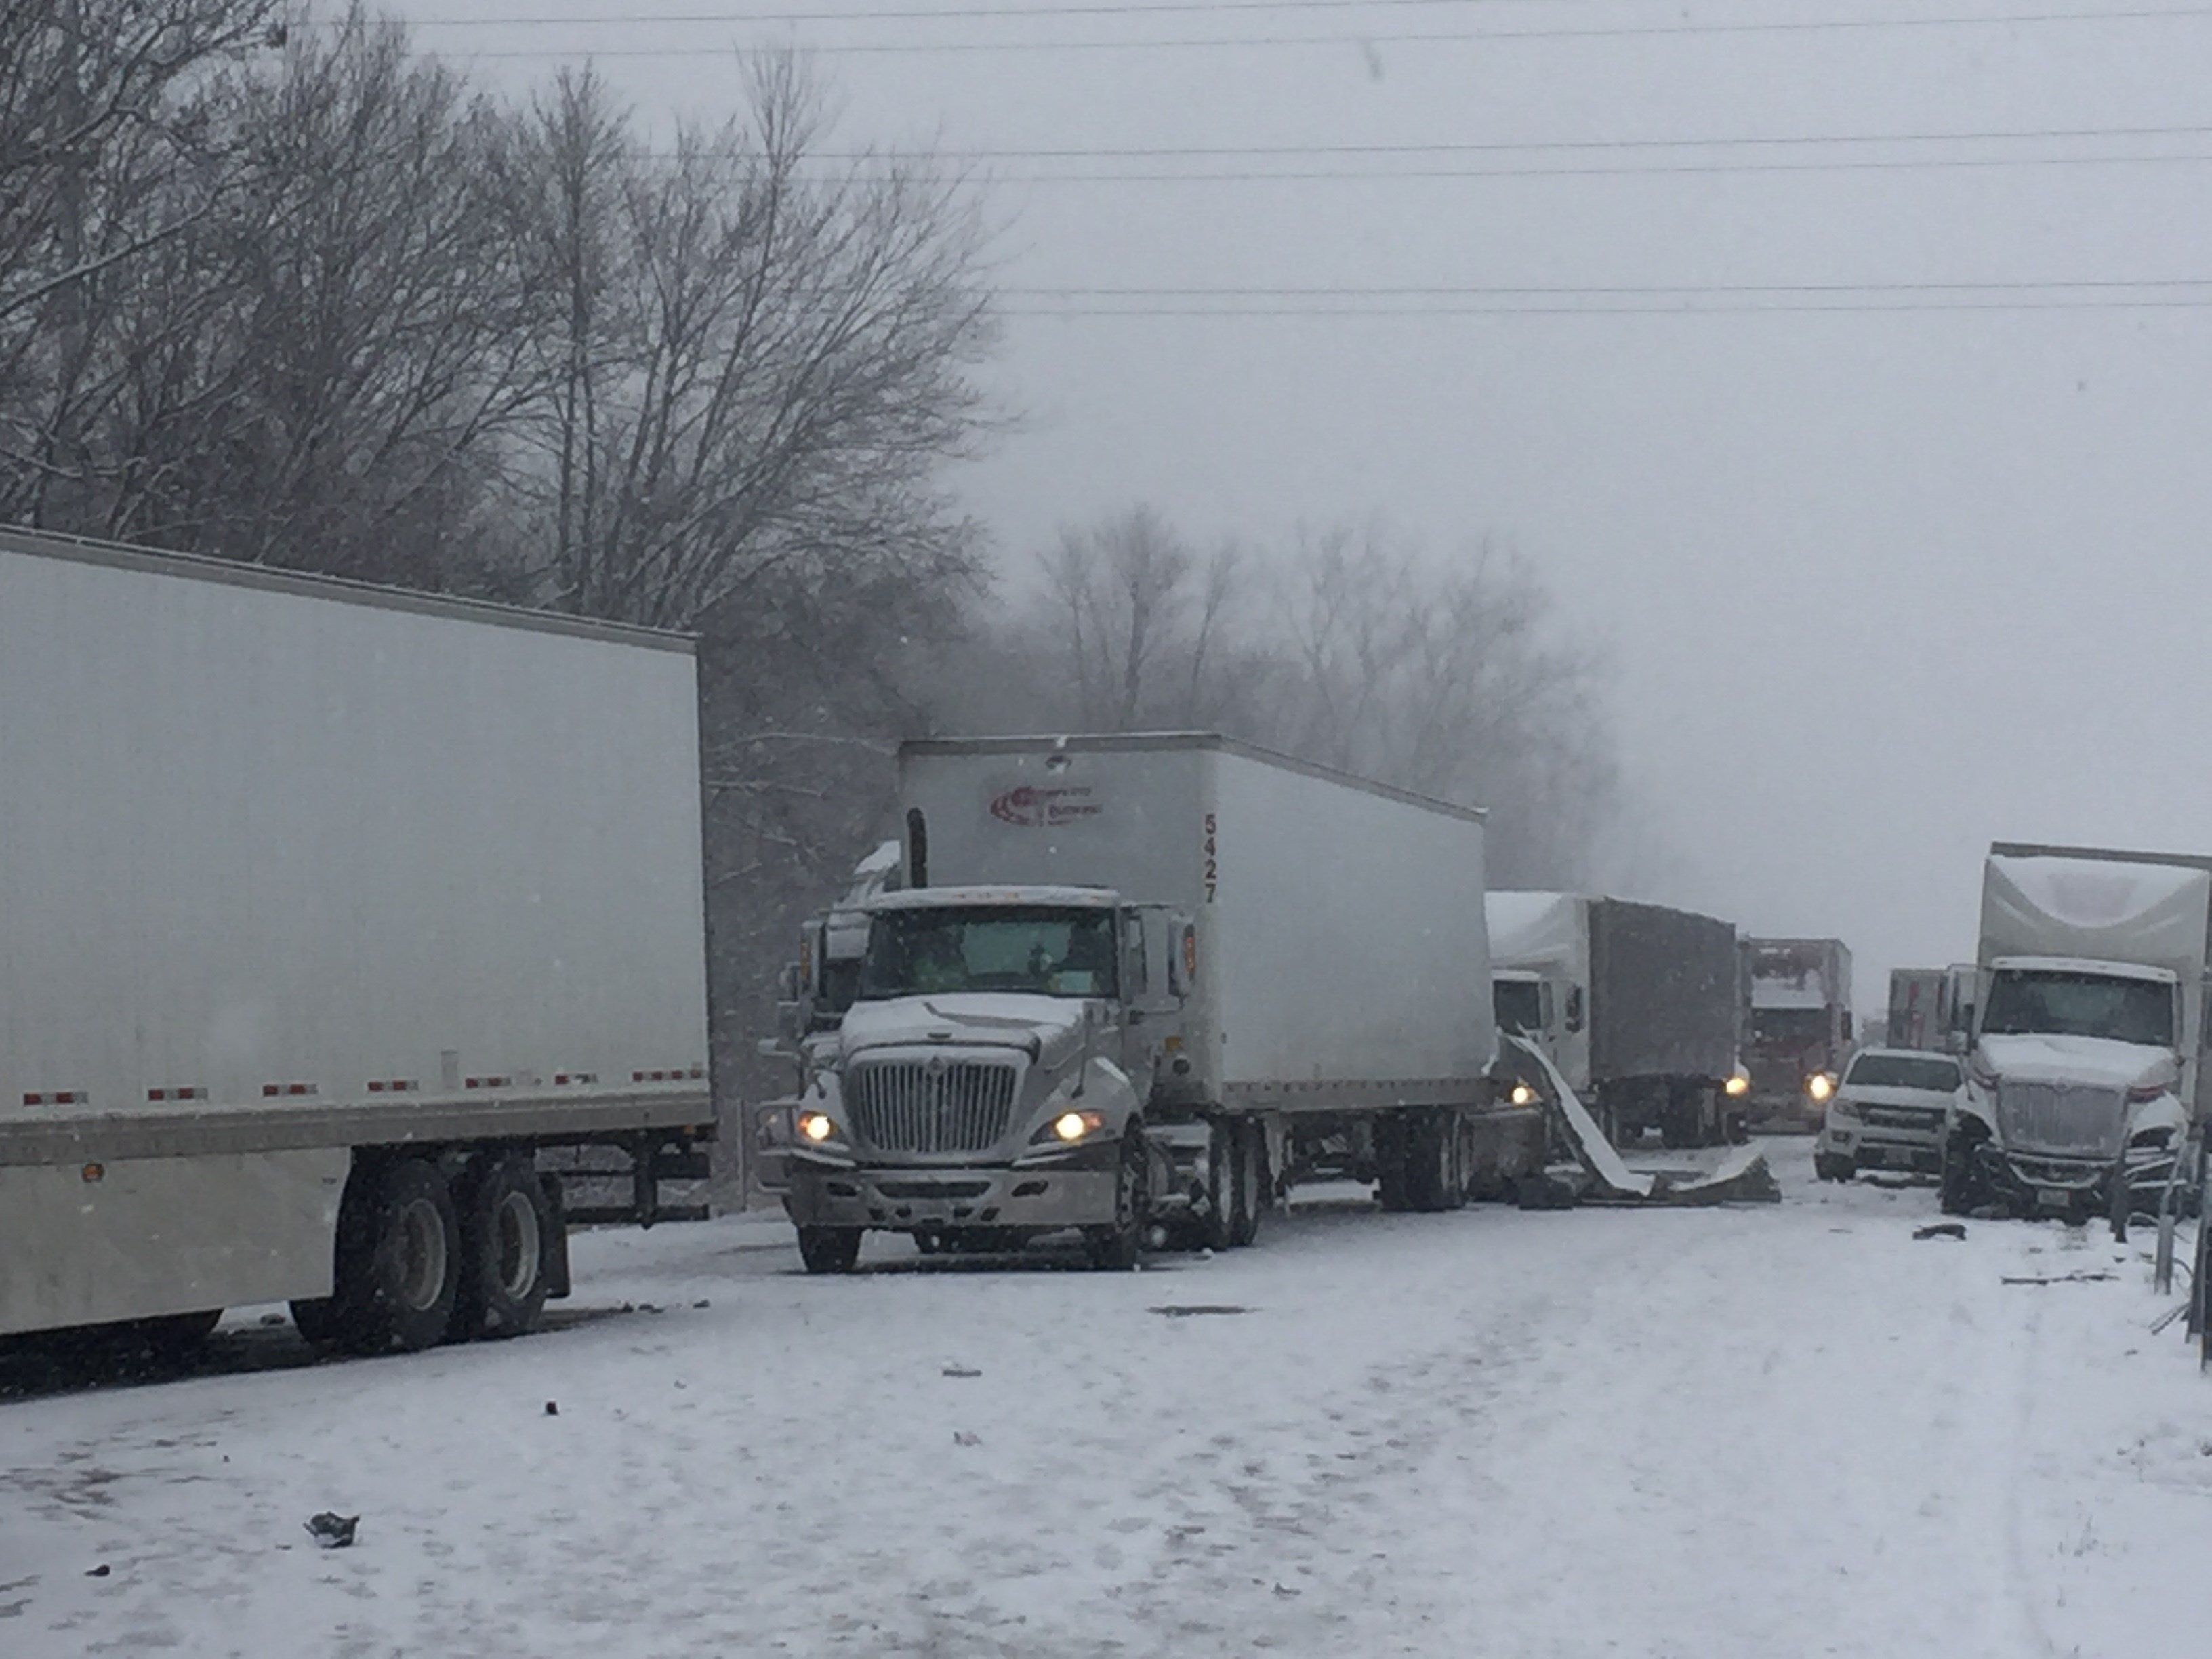 WB I-94 in Van Buren Co. reopens after 29-vehicle pileup